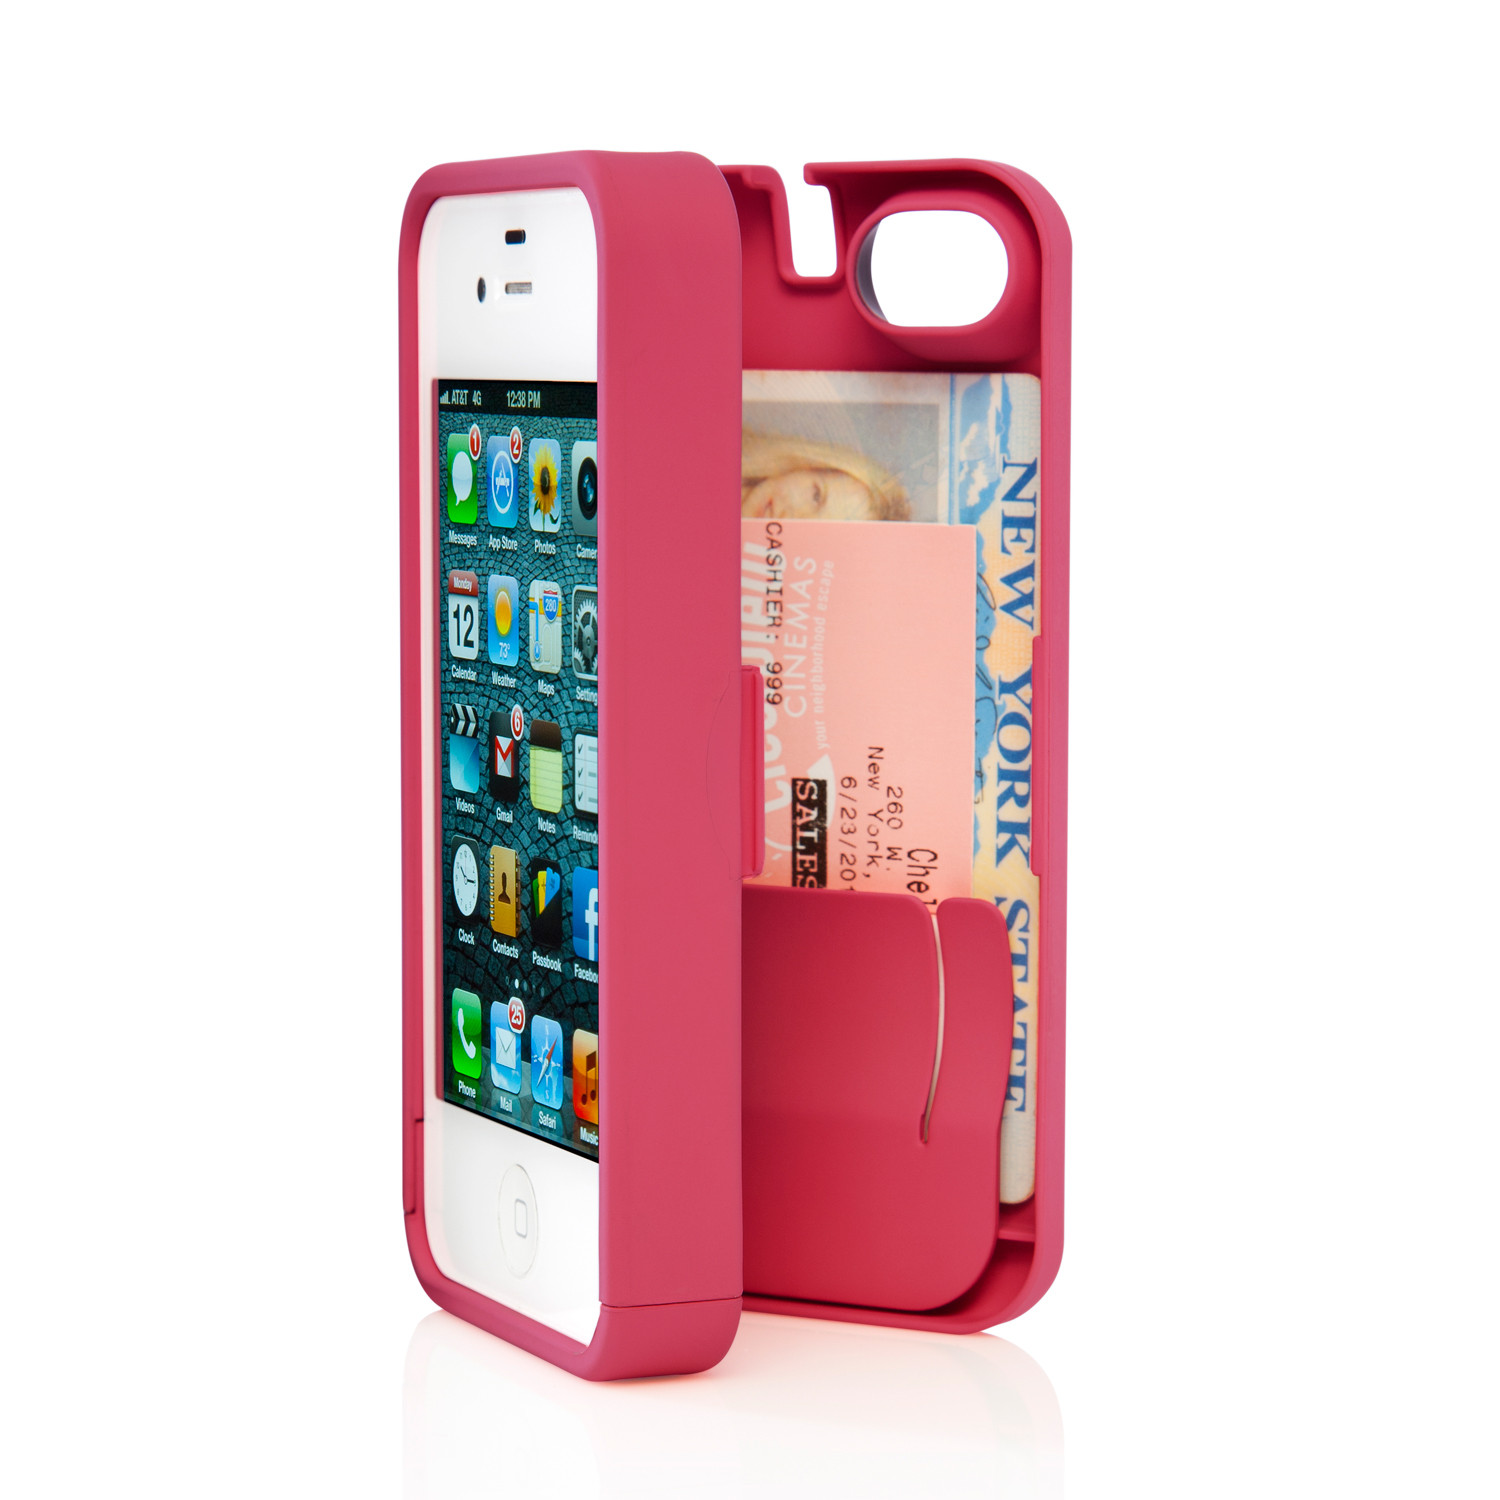 Iphone Without Credit Card